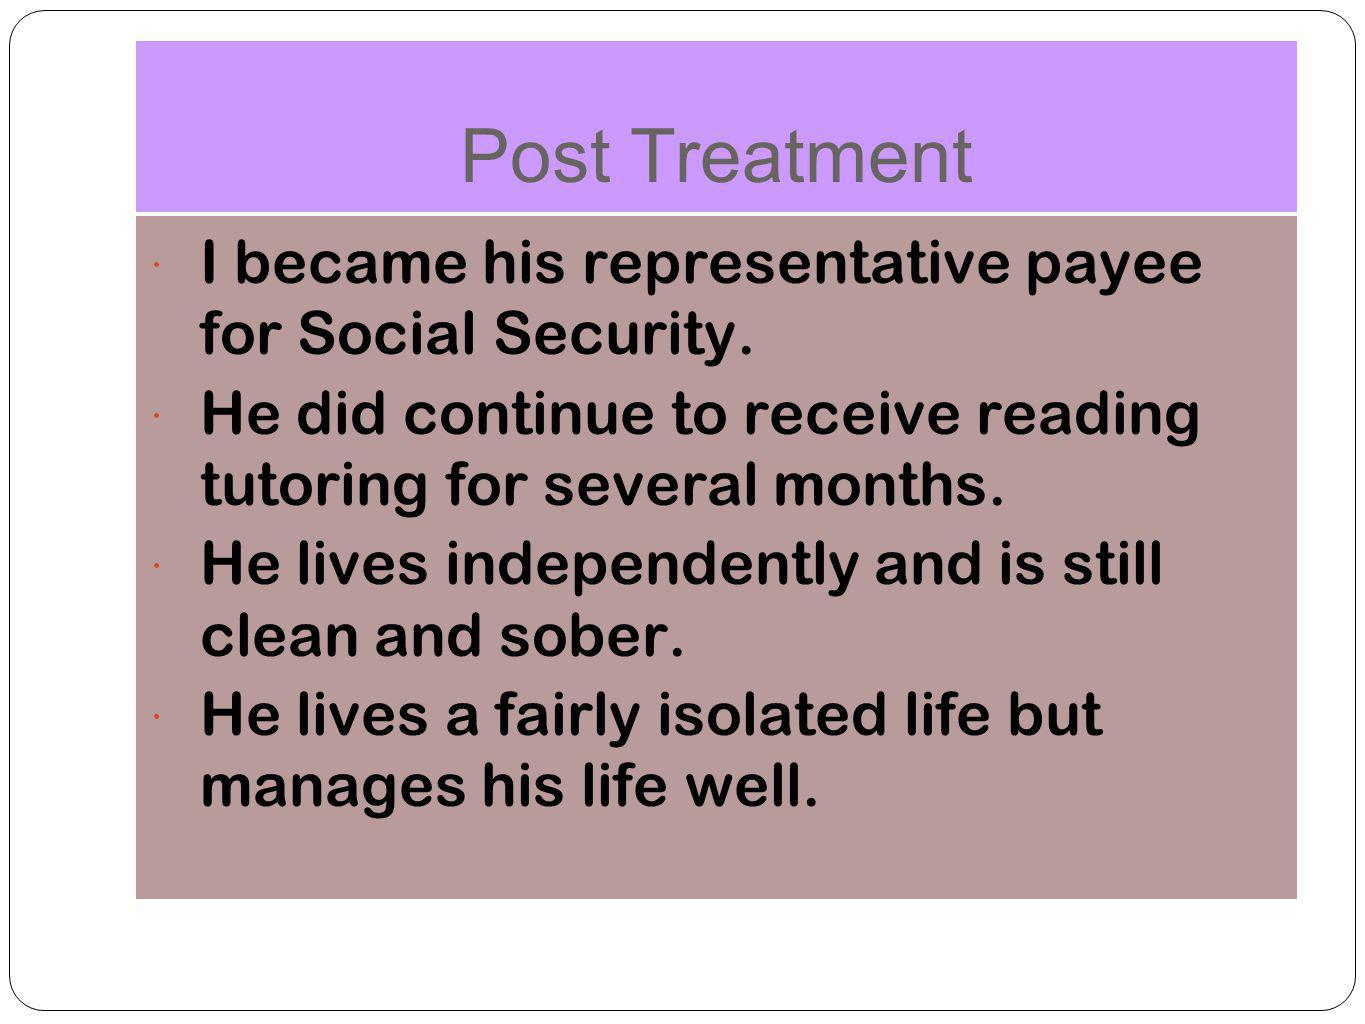 Post Treatment I became his representative payee for Social Security.